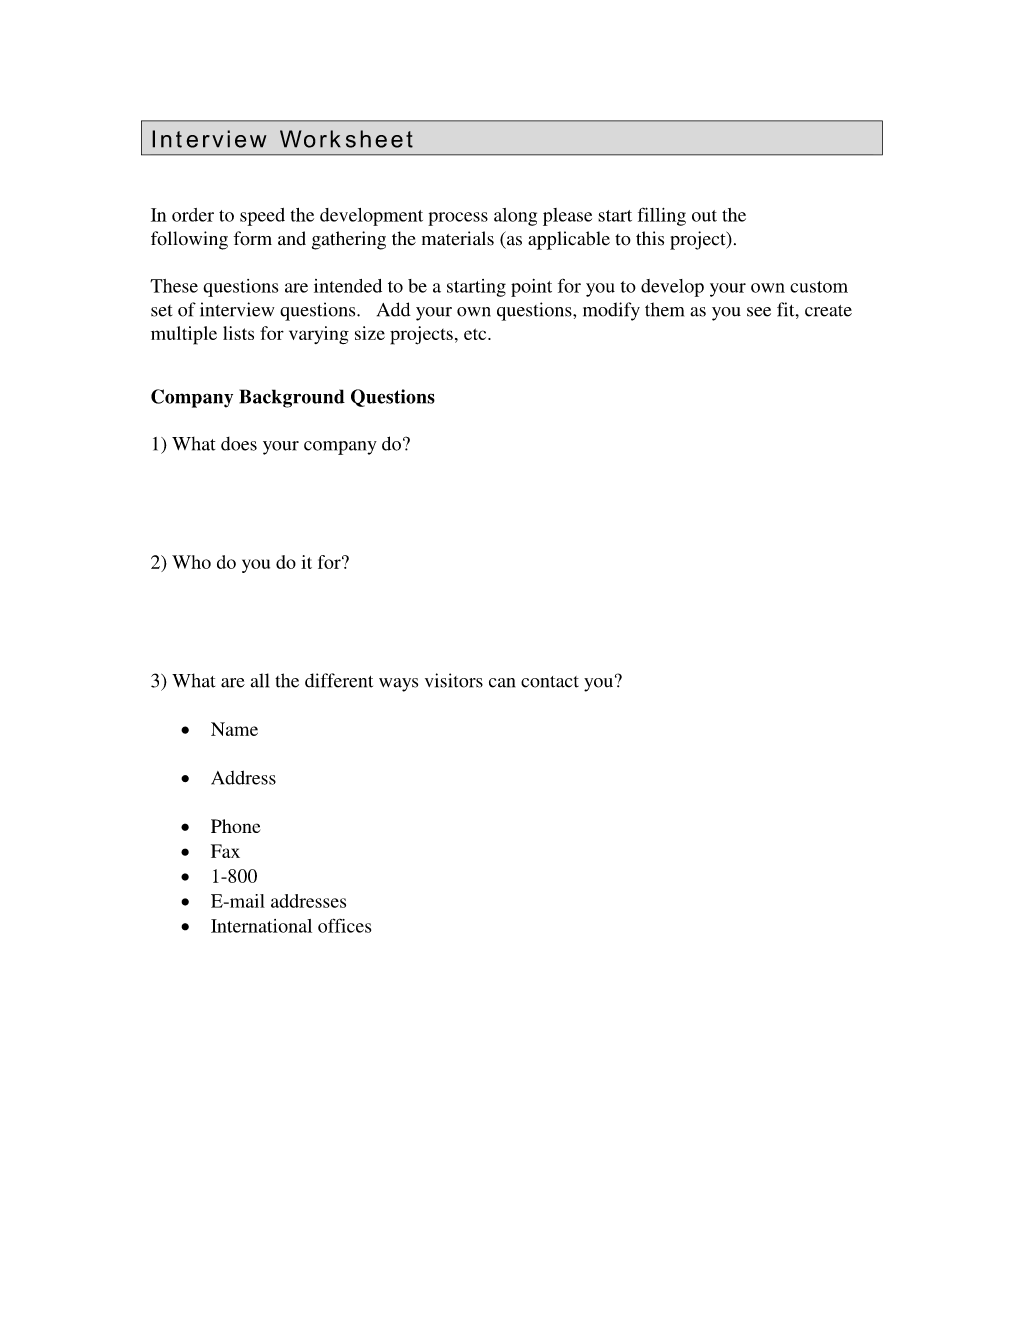 Interview Questionnaire Information Worksheet